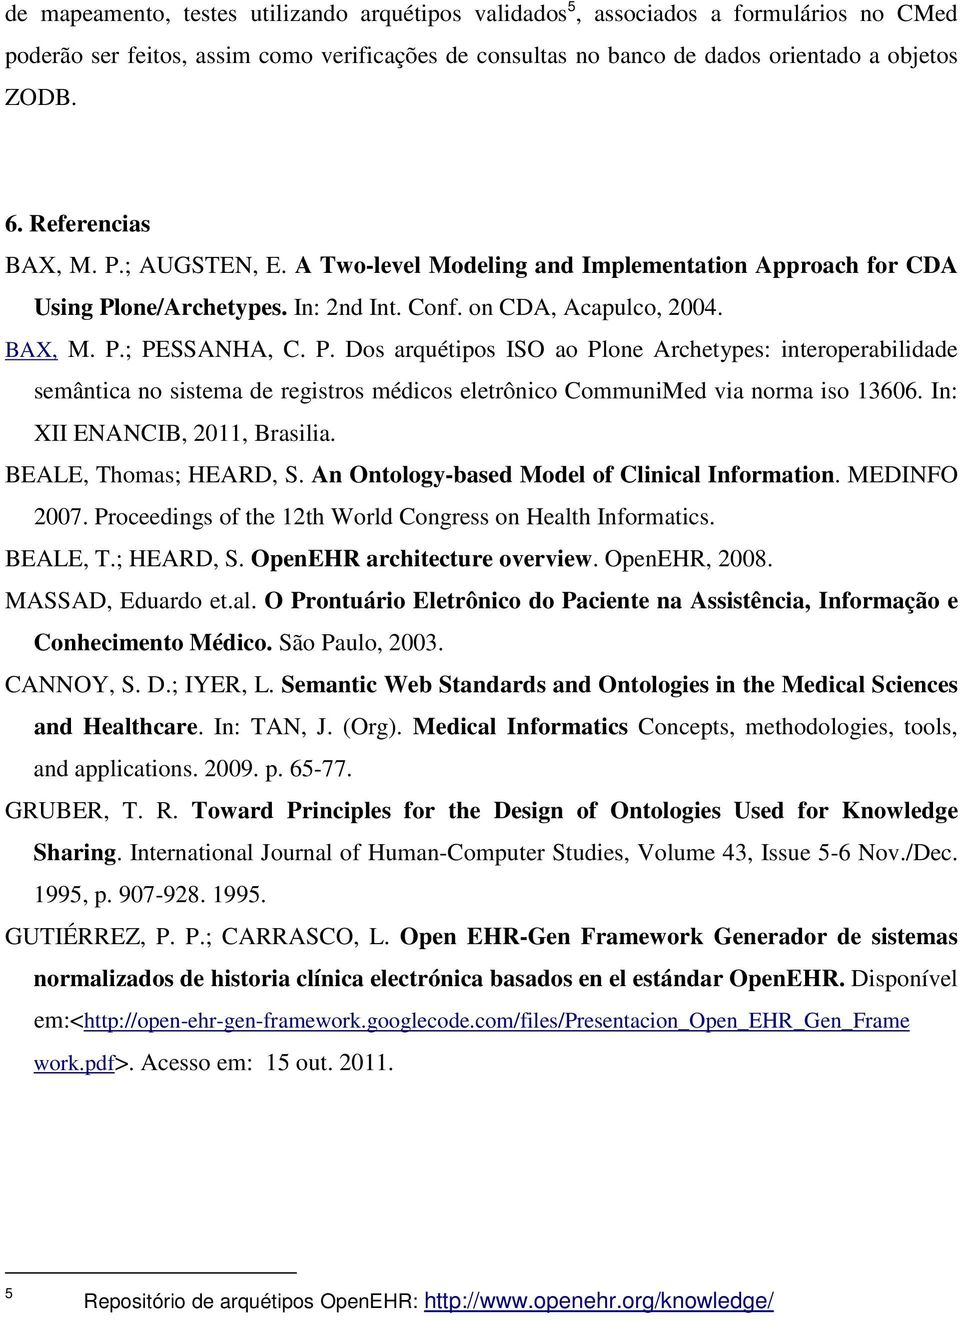 In: XII ENANCIB, 2011, Brasilia. BEALE, Thomas; HEARD, S. An Ontology-based Model of Clinical Information. MEDINFO 2007. Proceedings of the 12th World Congress on Health Informatics. BEALE, T.; HEARD, S. OpenEHR architecture overview.